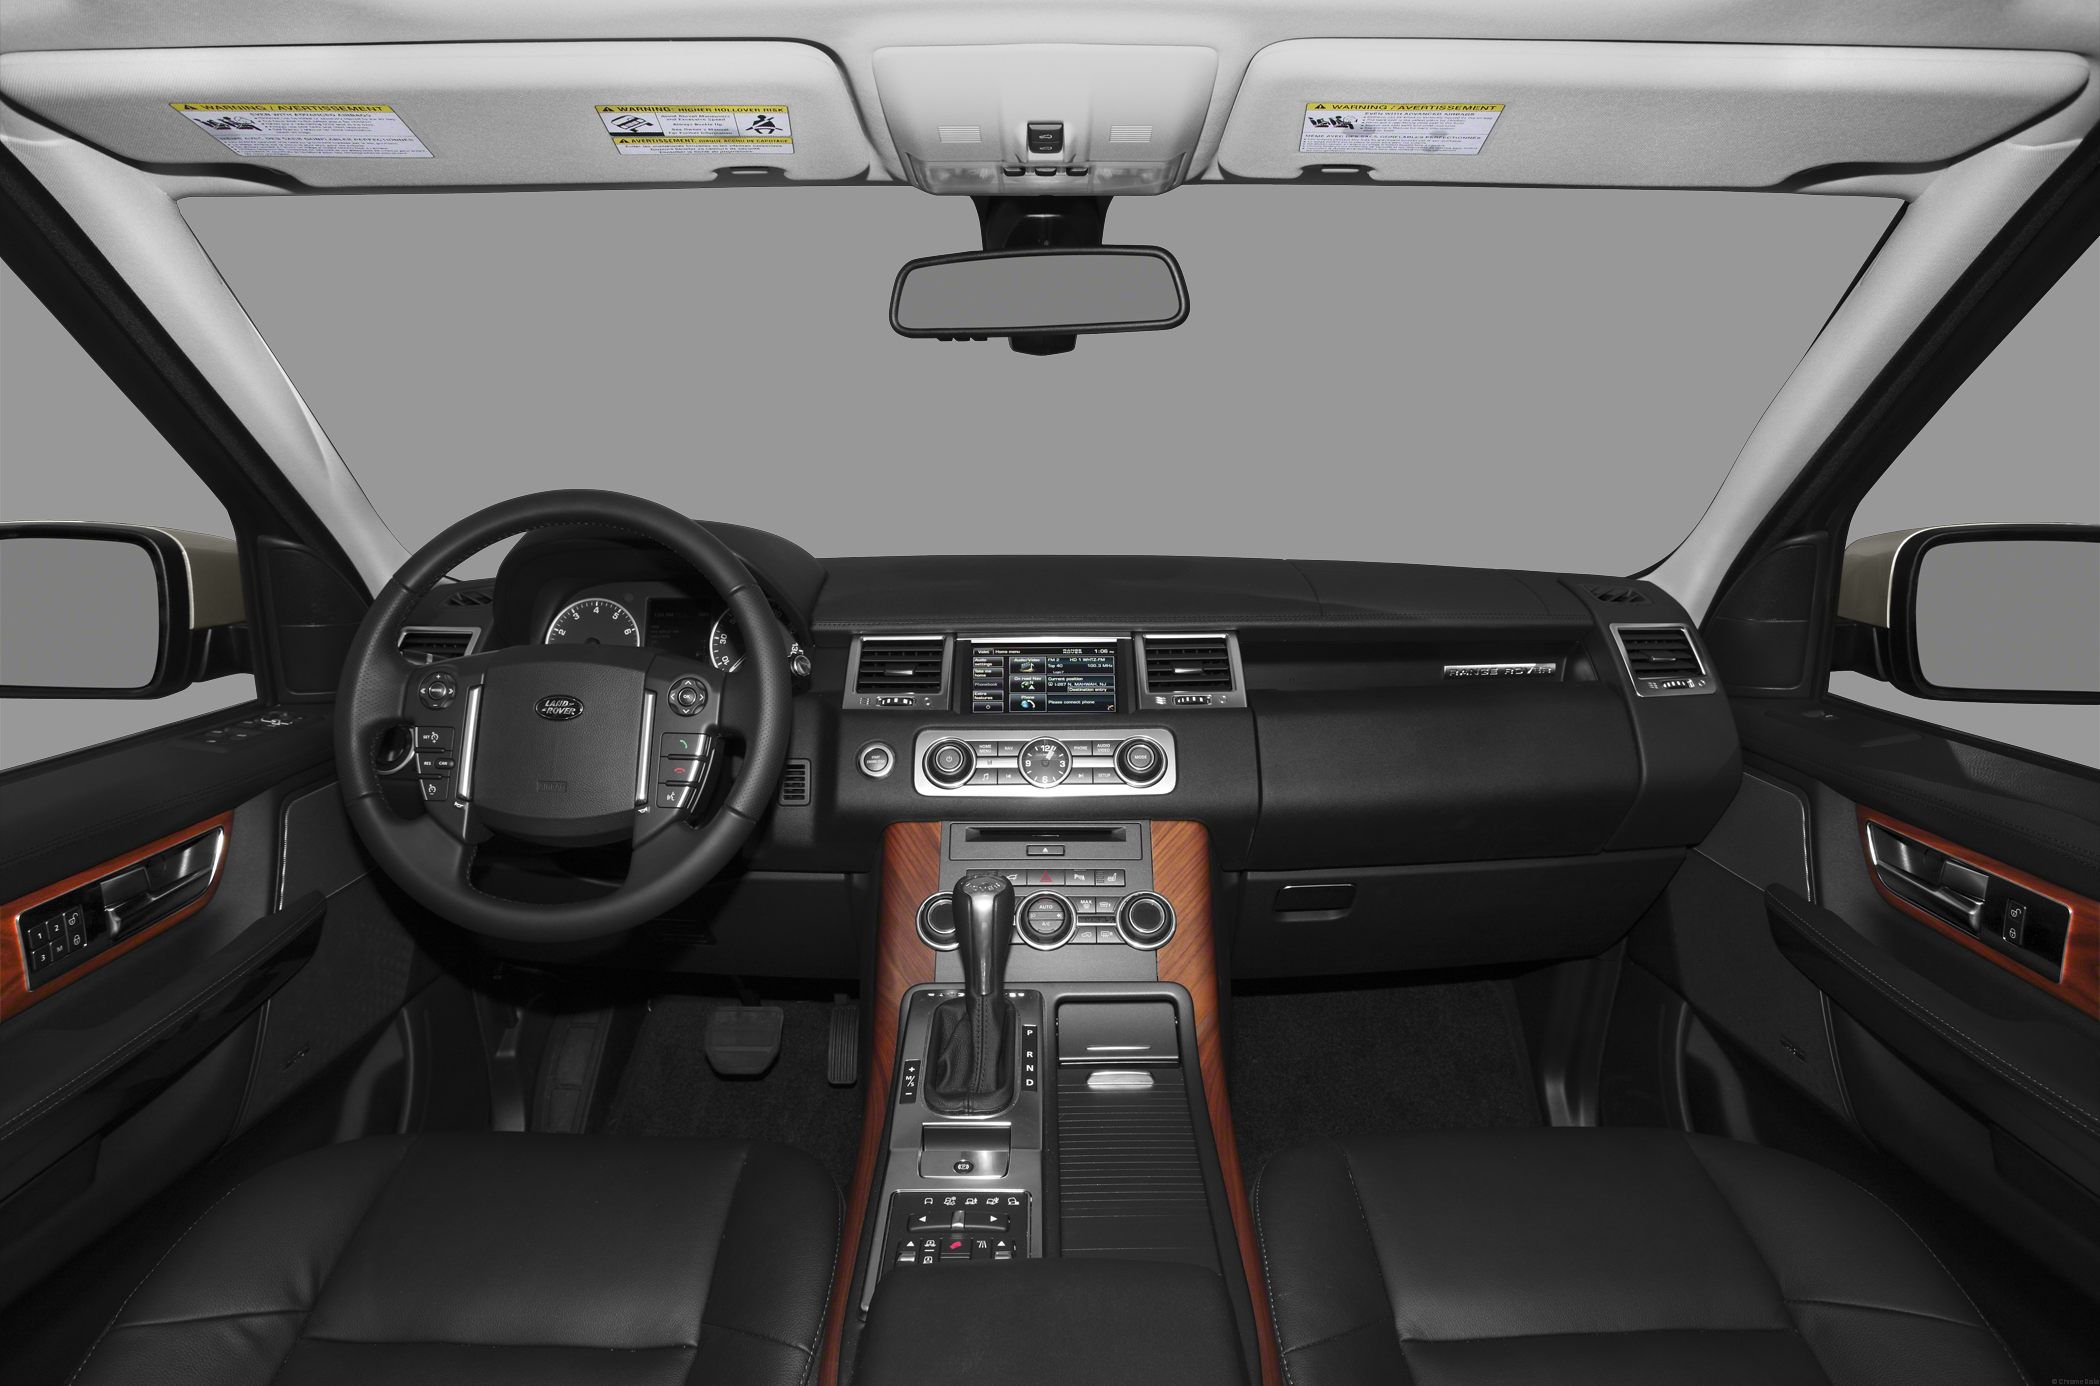 2013 range rover interior sport 2013 land rover range. Black Bedroom Furniture Sets. Home Design Ideas